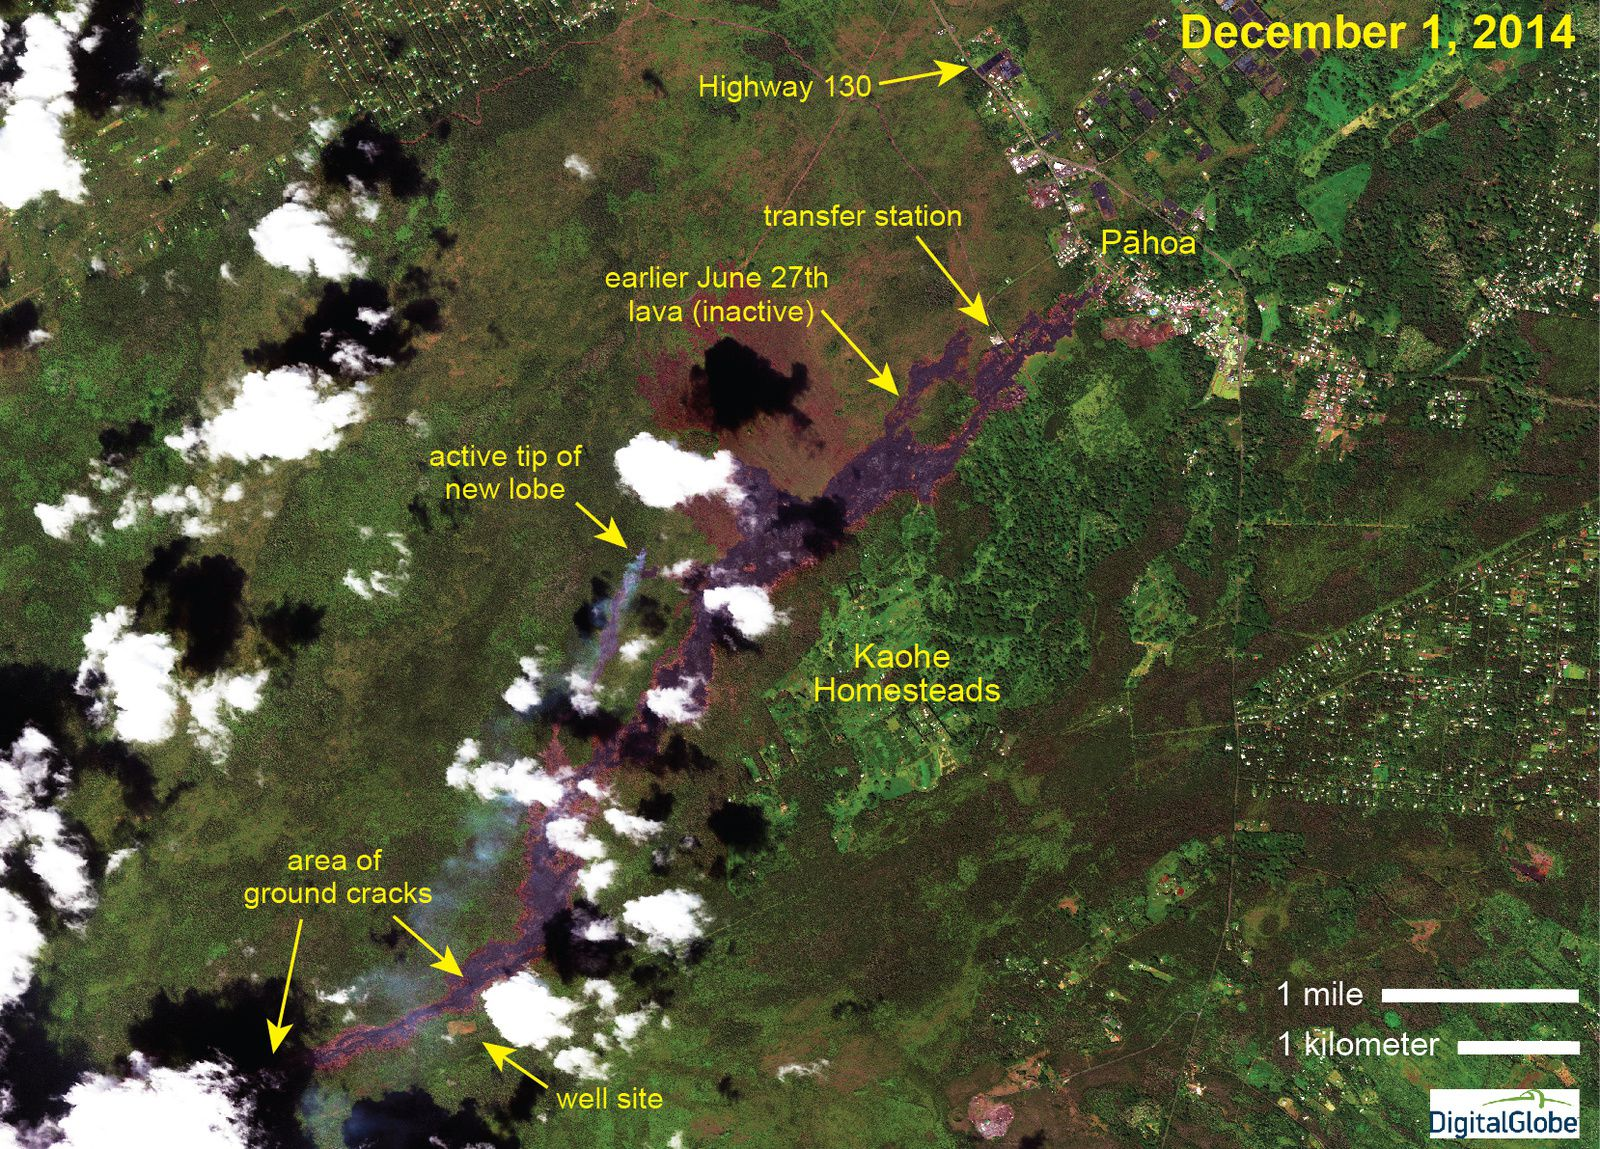 Hawaii - June 27's lava flow - position of the new active lobe, on 1 December compared with the old part of the cast becoming inactive - photo and annotations HVO